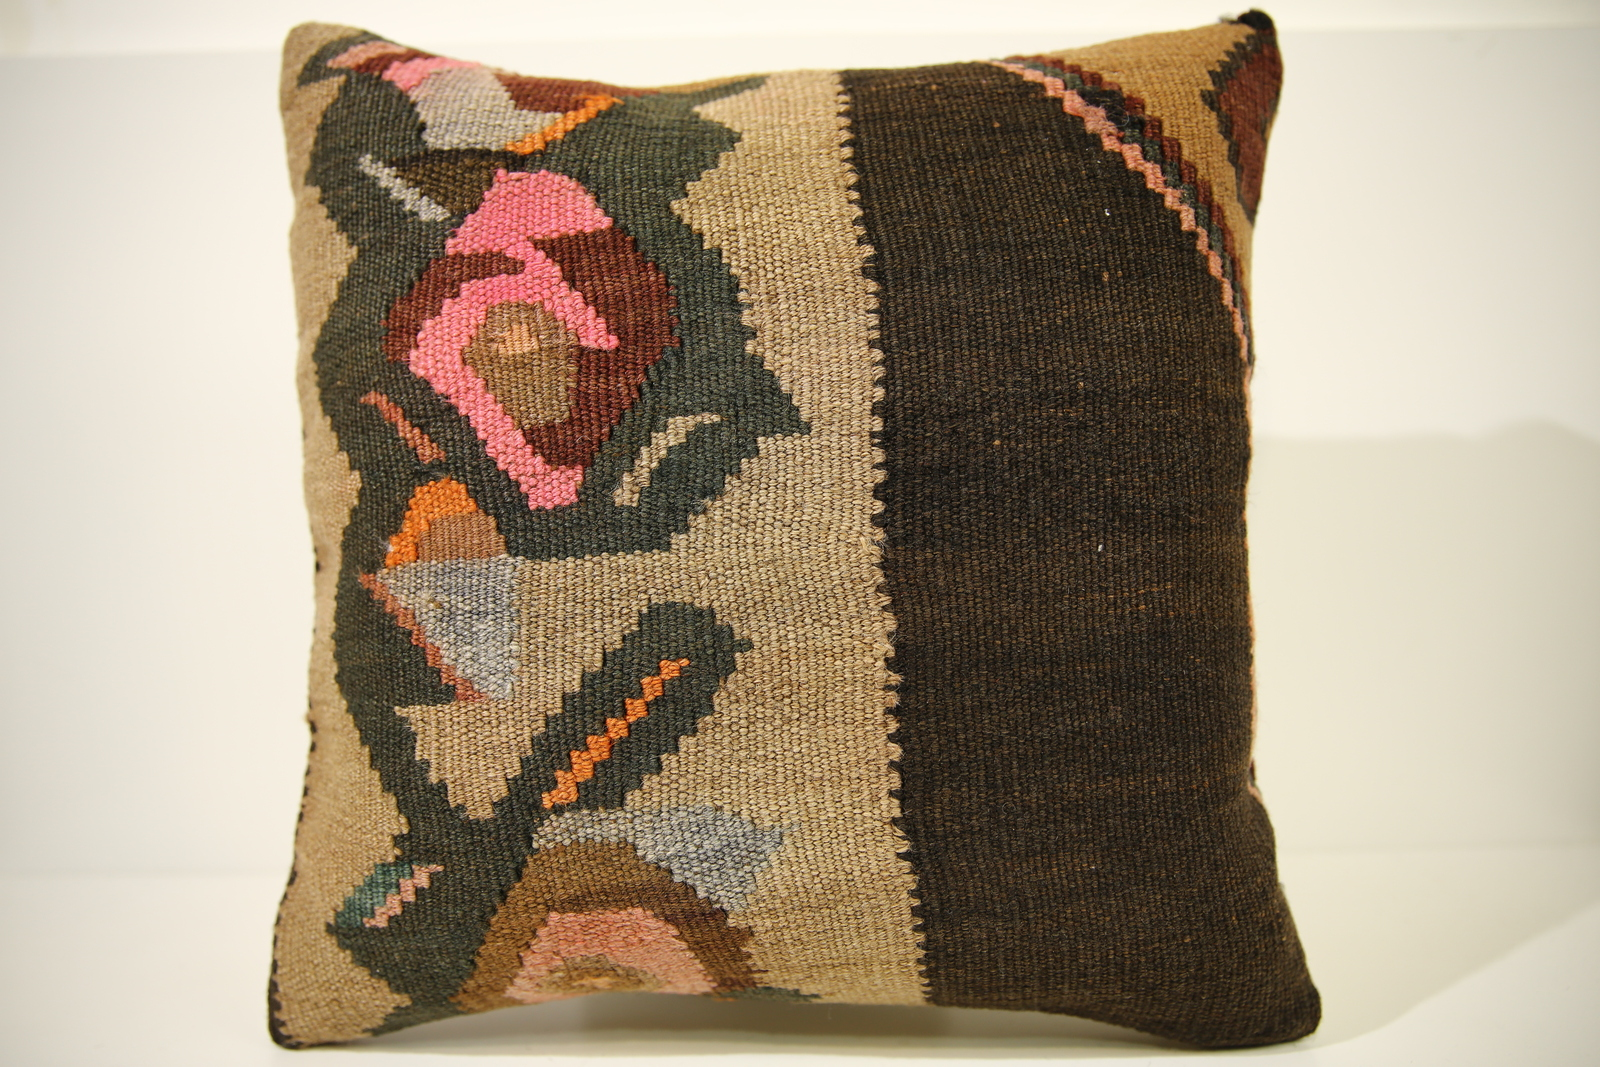 Kilim Pillows |16x16 | Decorative Pillows | 1555 | Accent Pillows turkish pillow